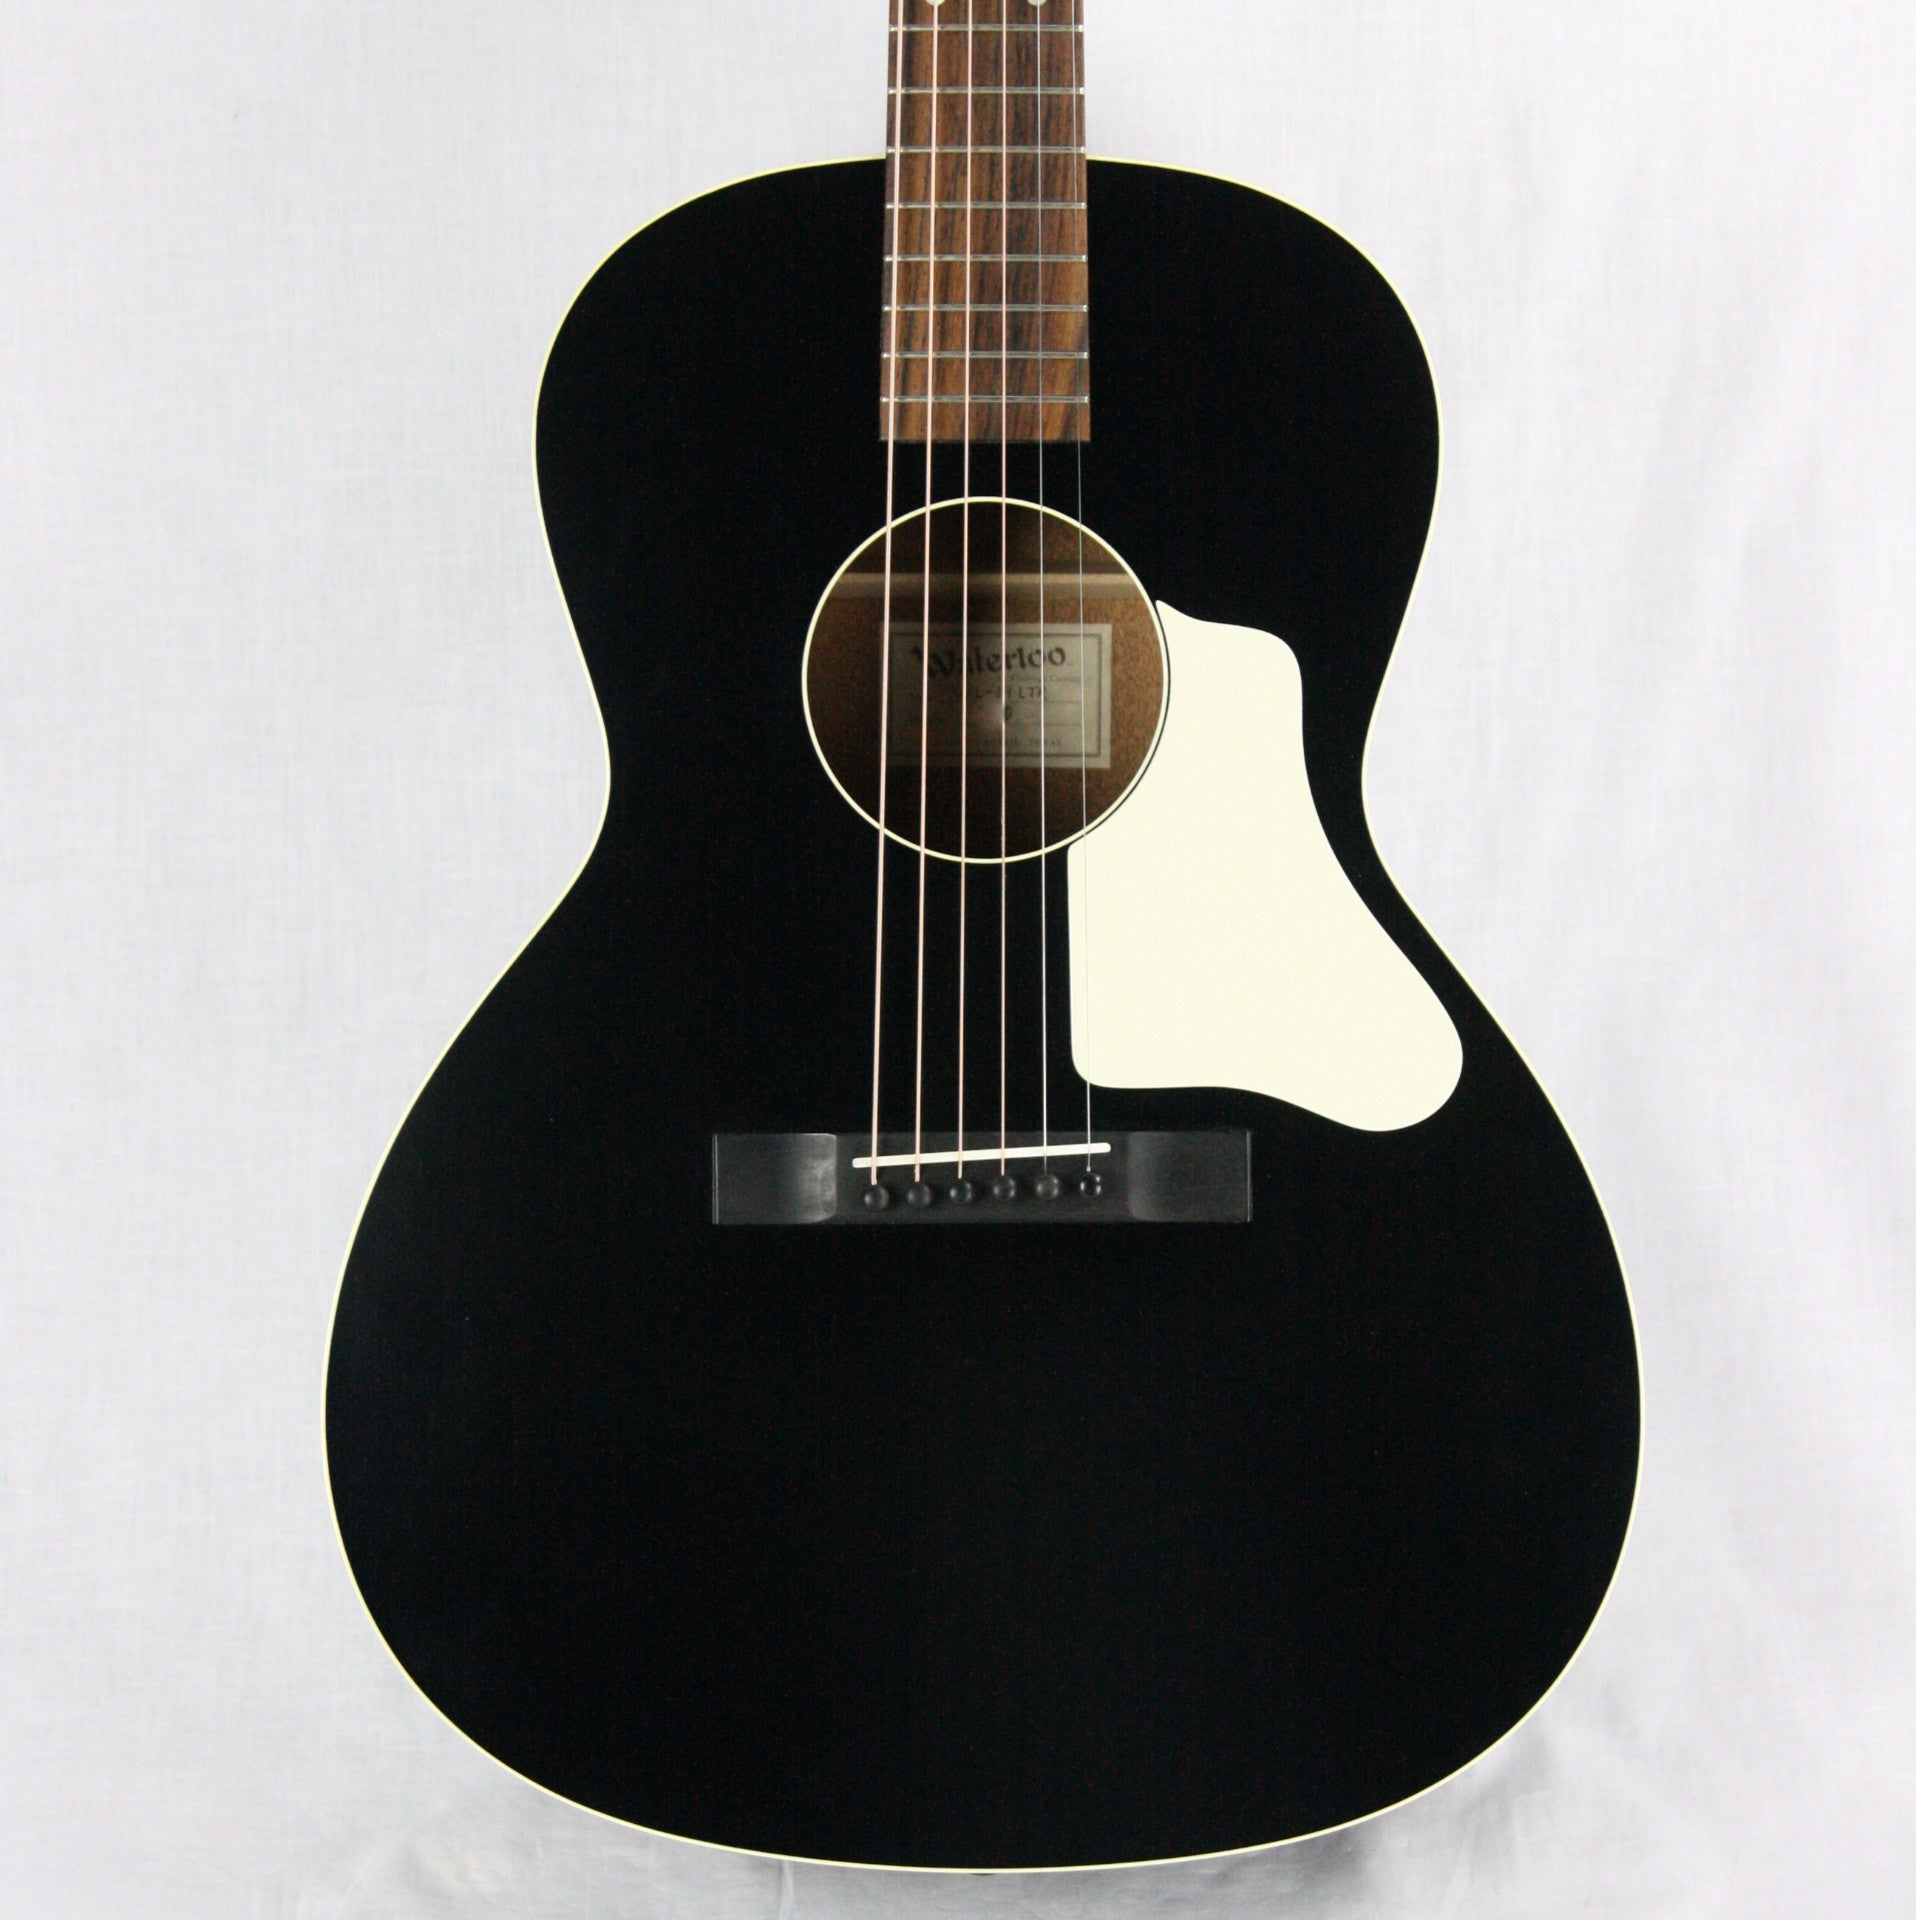 Waterloo WL-14 LTR by Collings! Ladder-Braced L w/ Truss Rod! Black Satin Finish